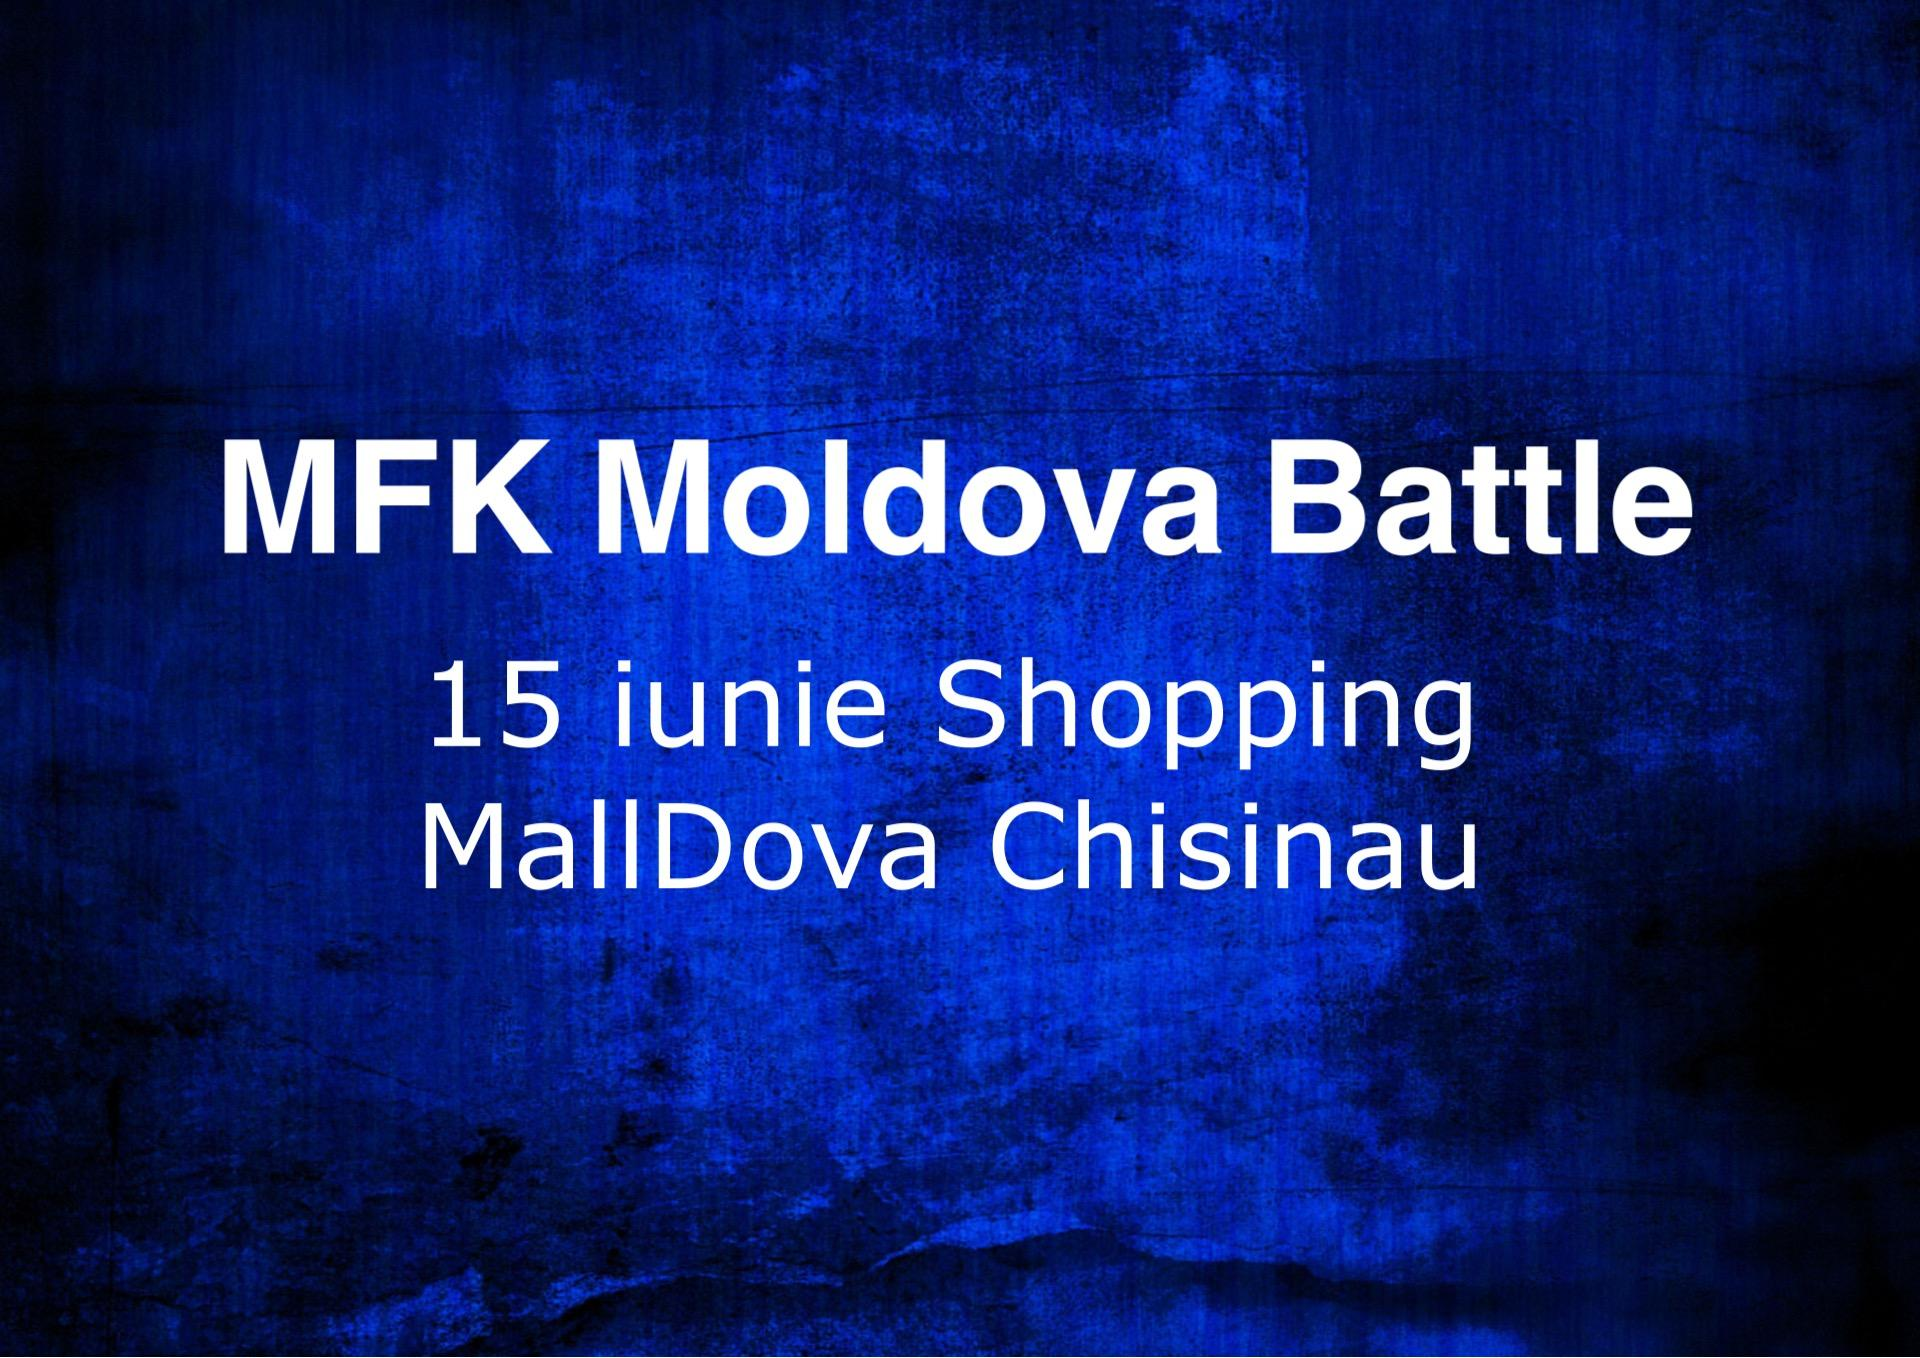 MFK Rep Moldova Battle